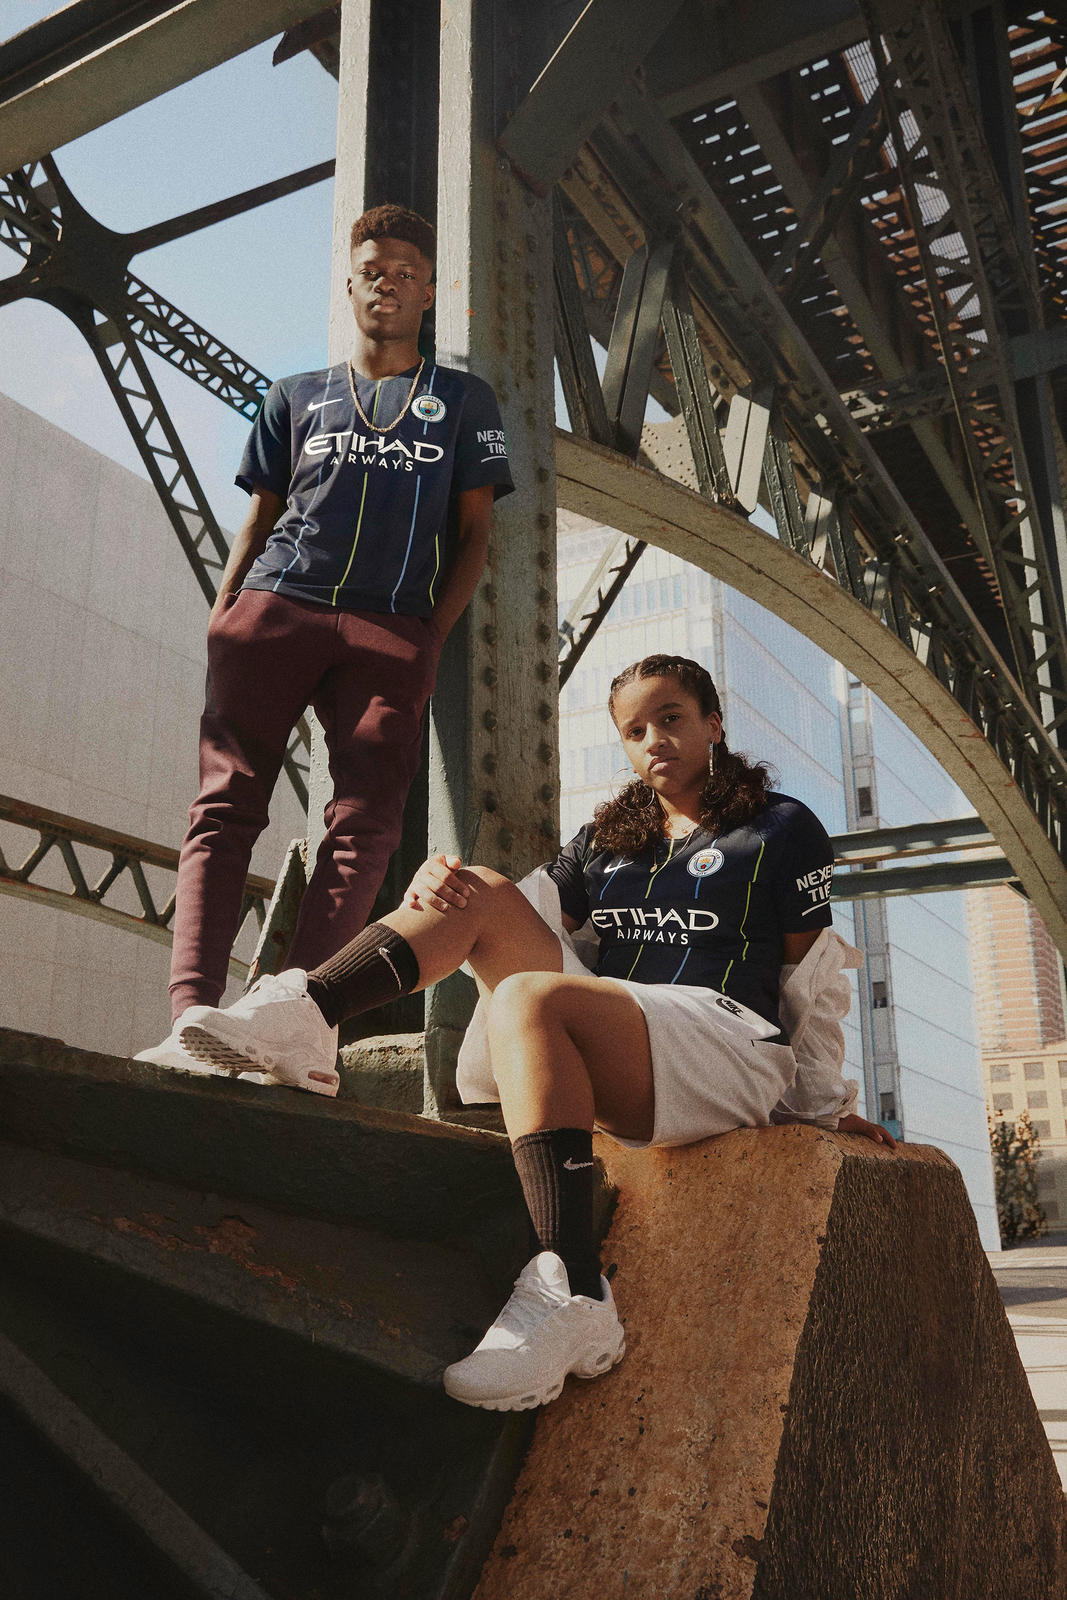 Manchester City's Away Kits are a Battle Cry from the Club's Watershed Match 2